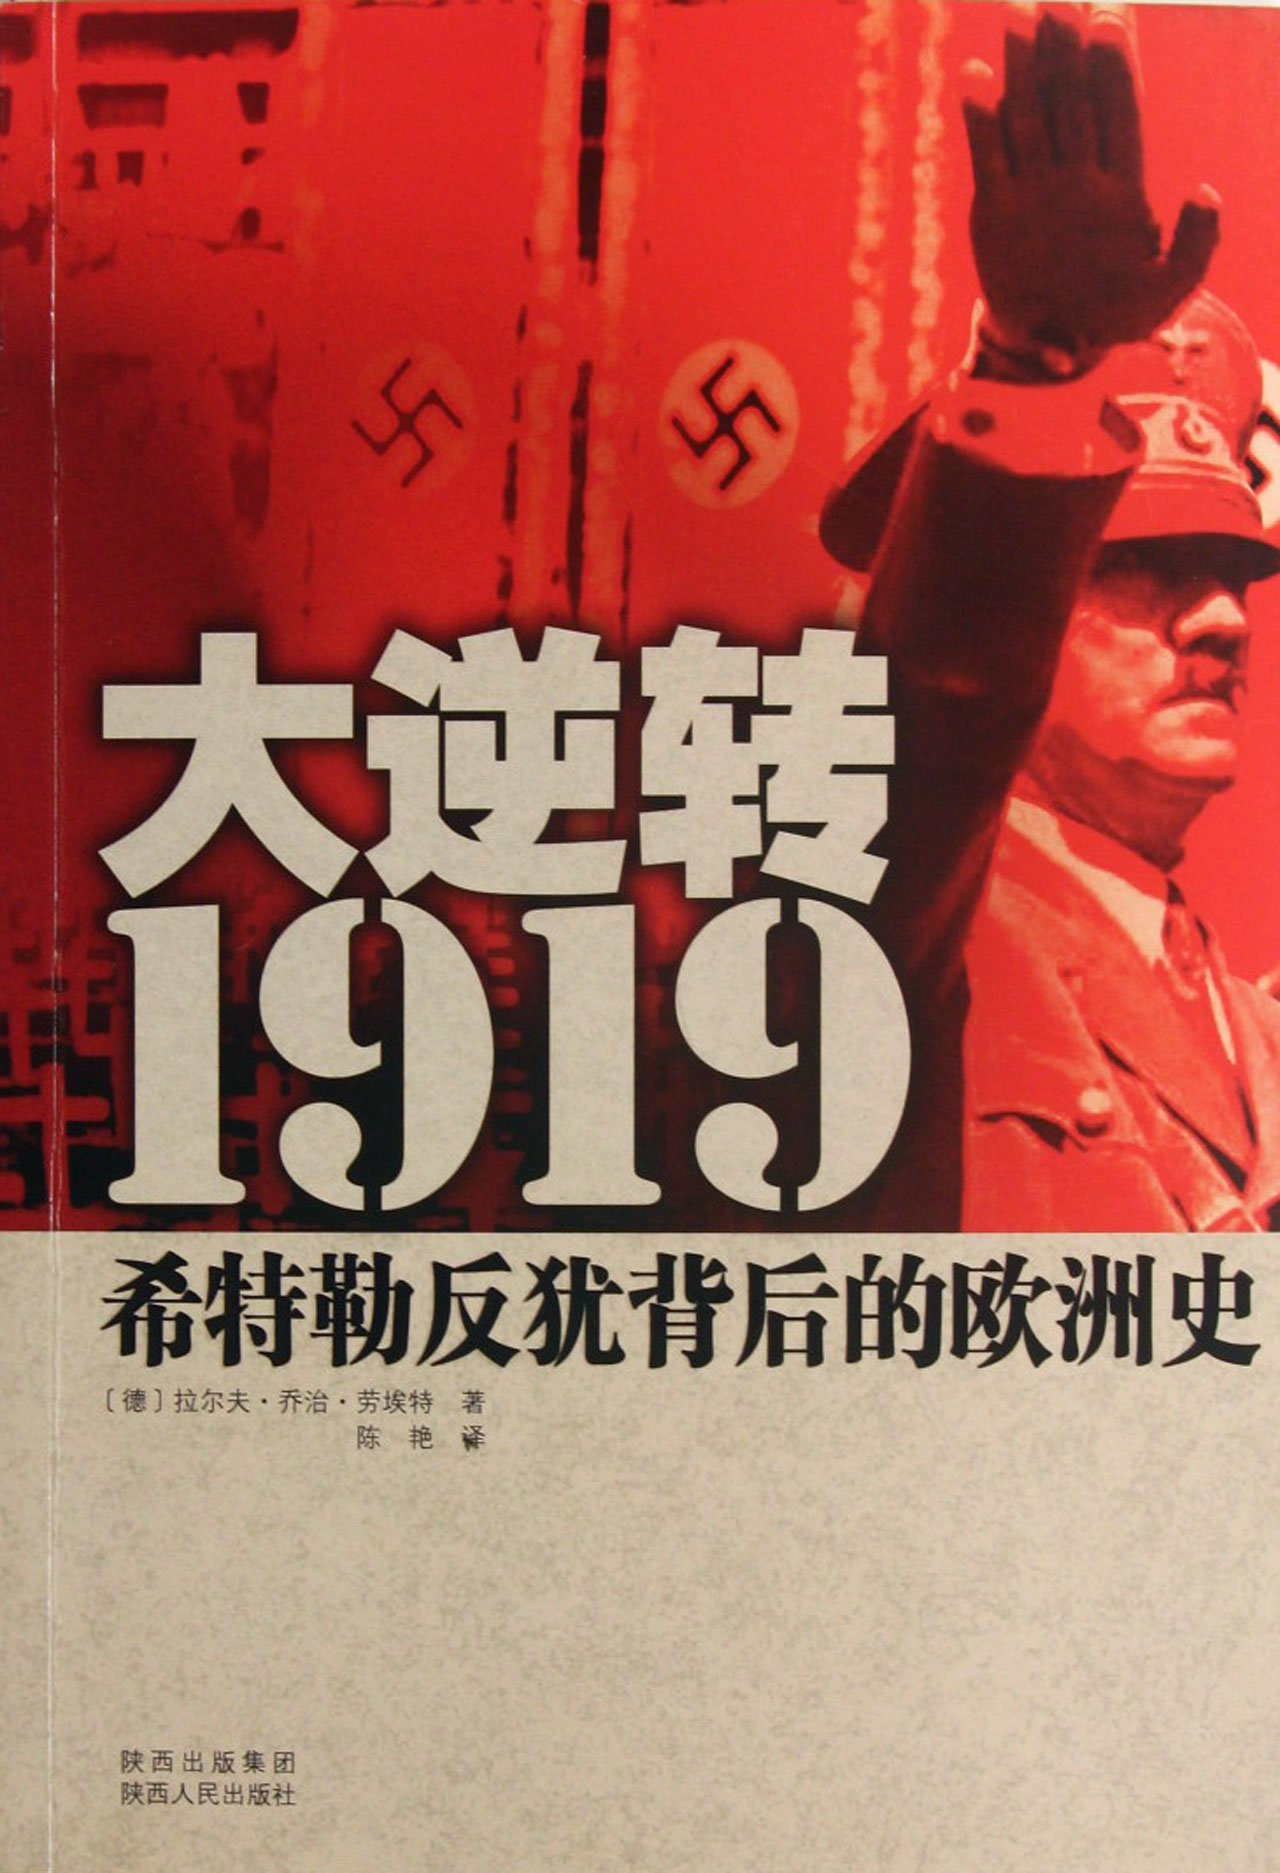 The European History  Behind Reversal of 1919- Hitler anti-Semitic (Chinese Edition) pdf